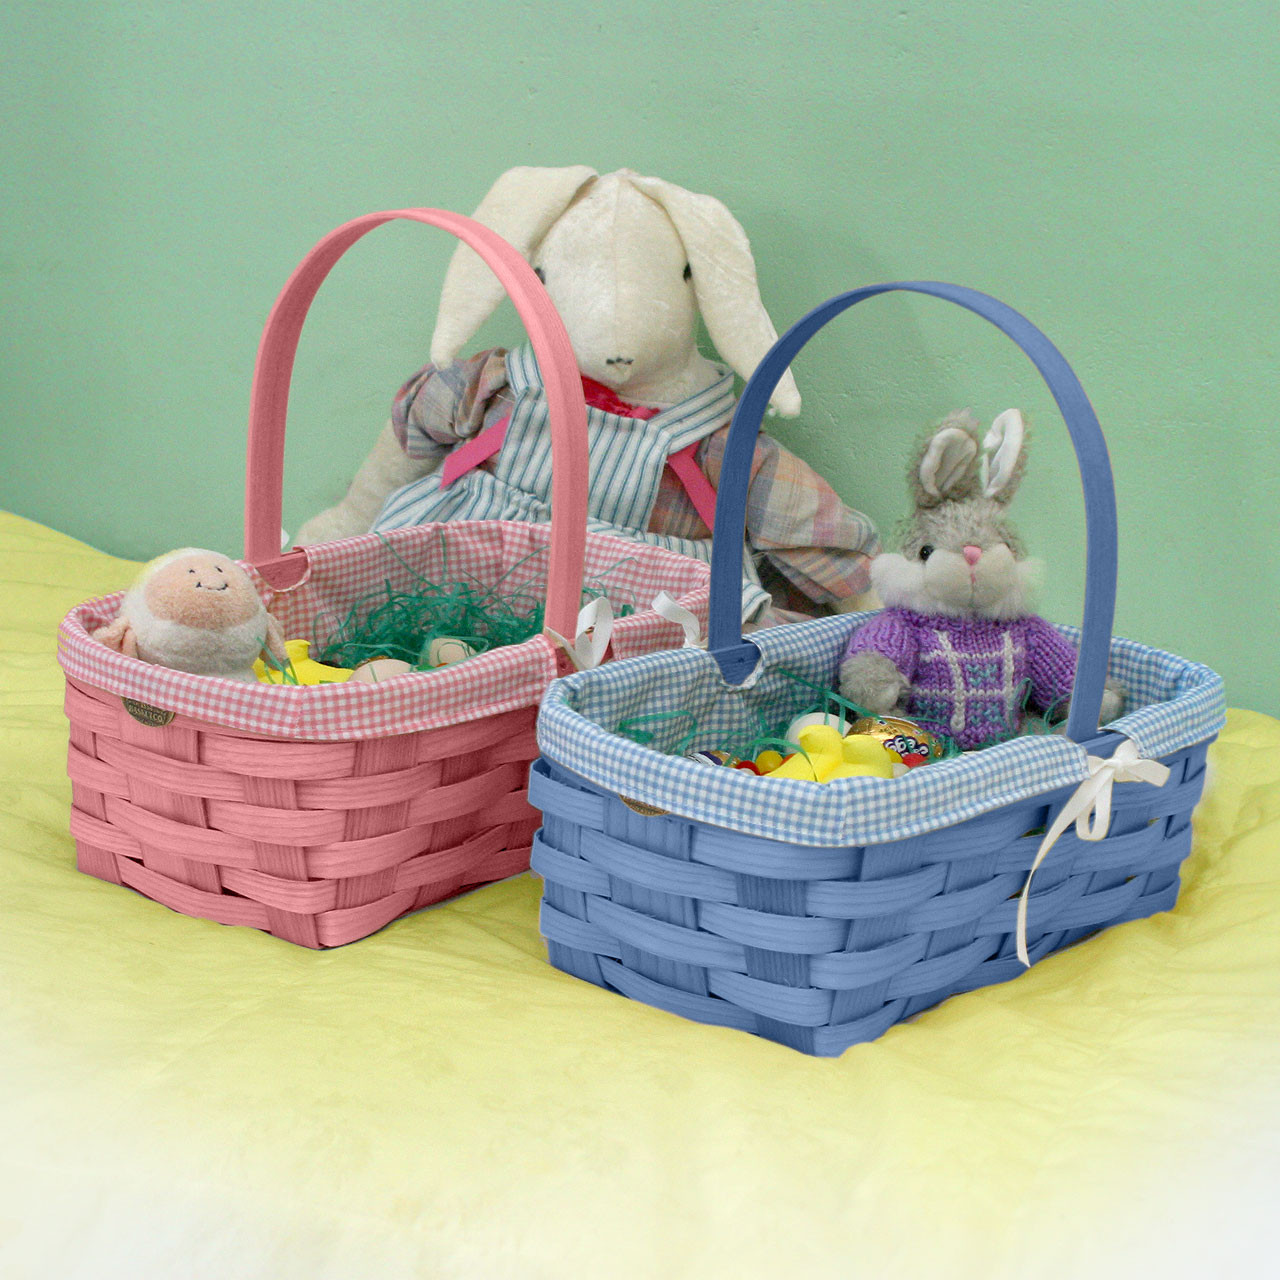 Peterboro quality easter and newborn gift basket w liner peterboro quality easter and newborn gift basket with liner negle